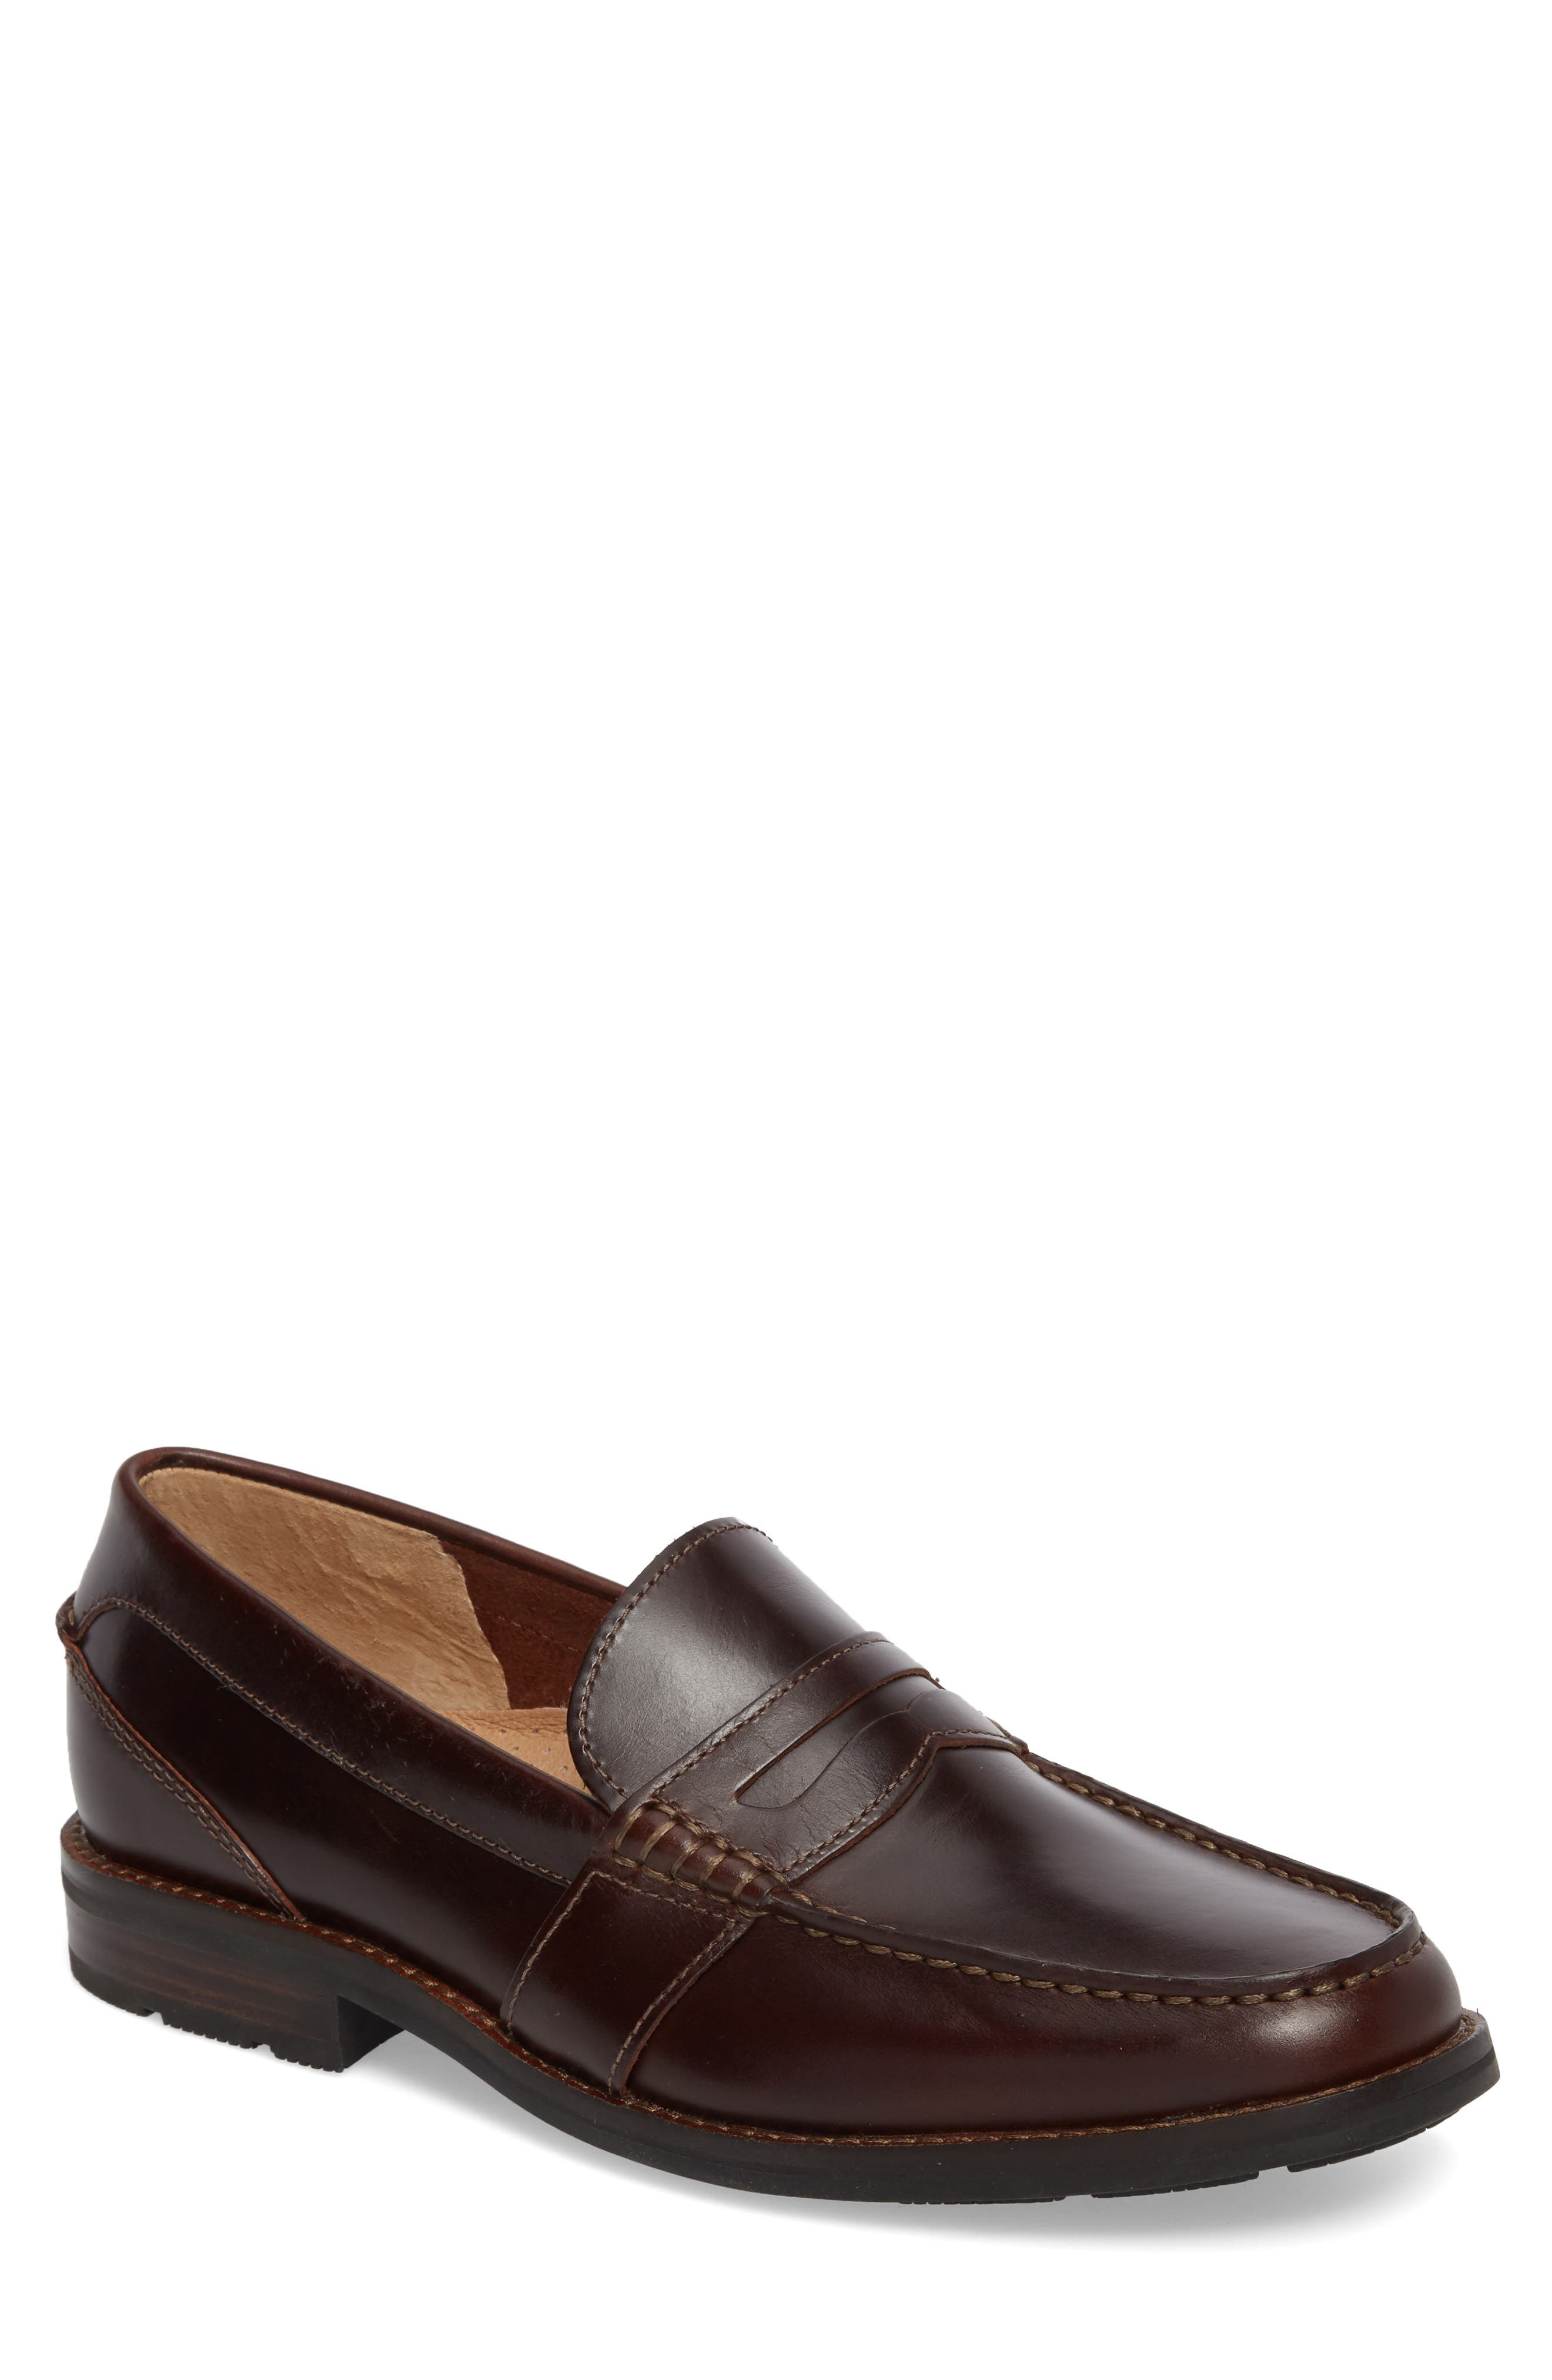 Essex Penny Loafer,                             Main thumbnail 1, color,                             AMARETTO LEATHER